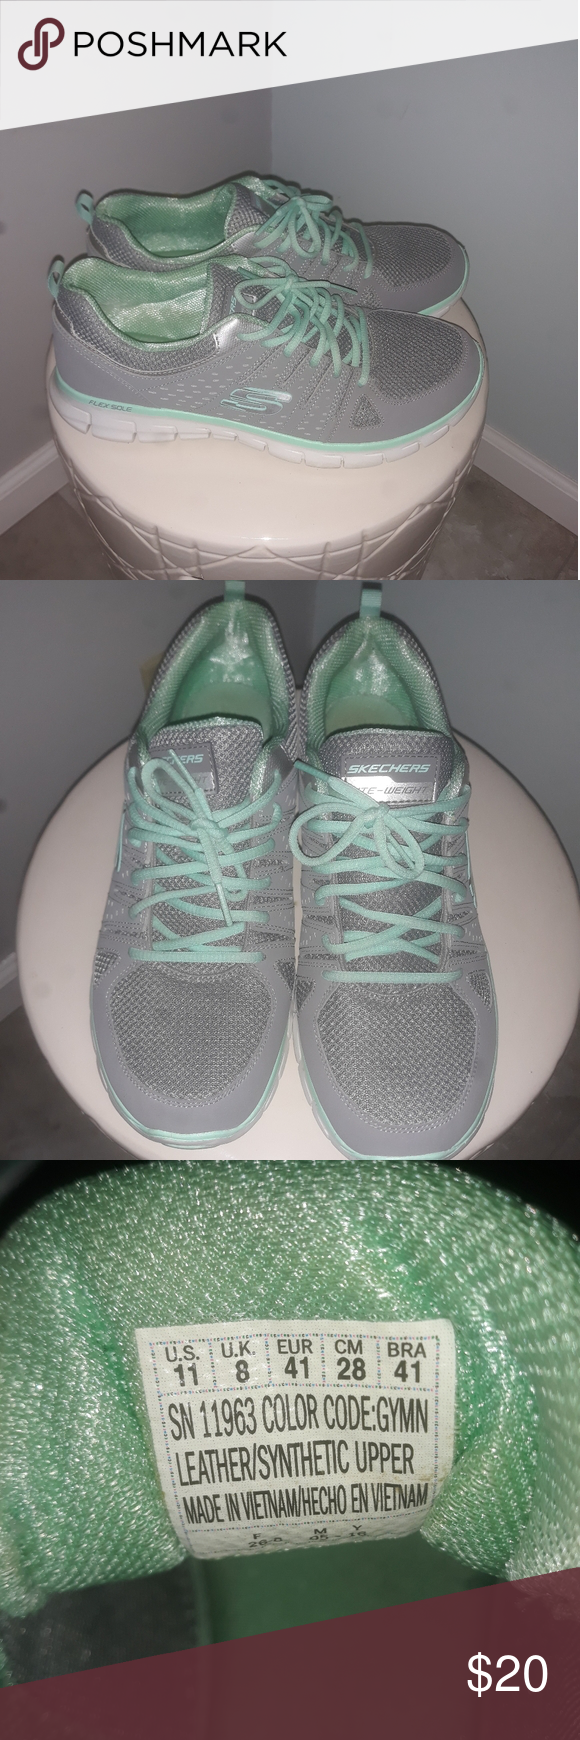 Sketchers womens 11 wide shoes in 2020